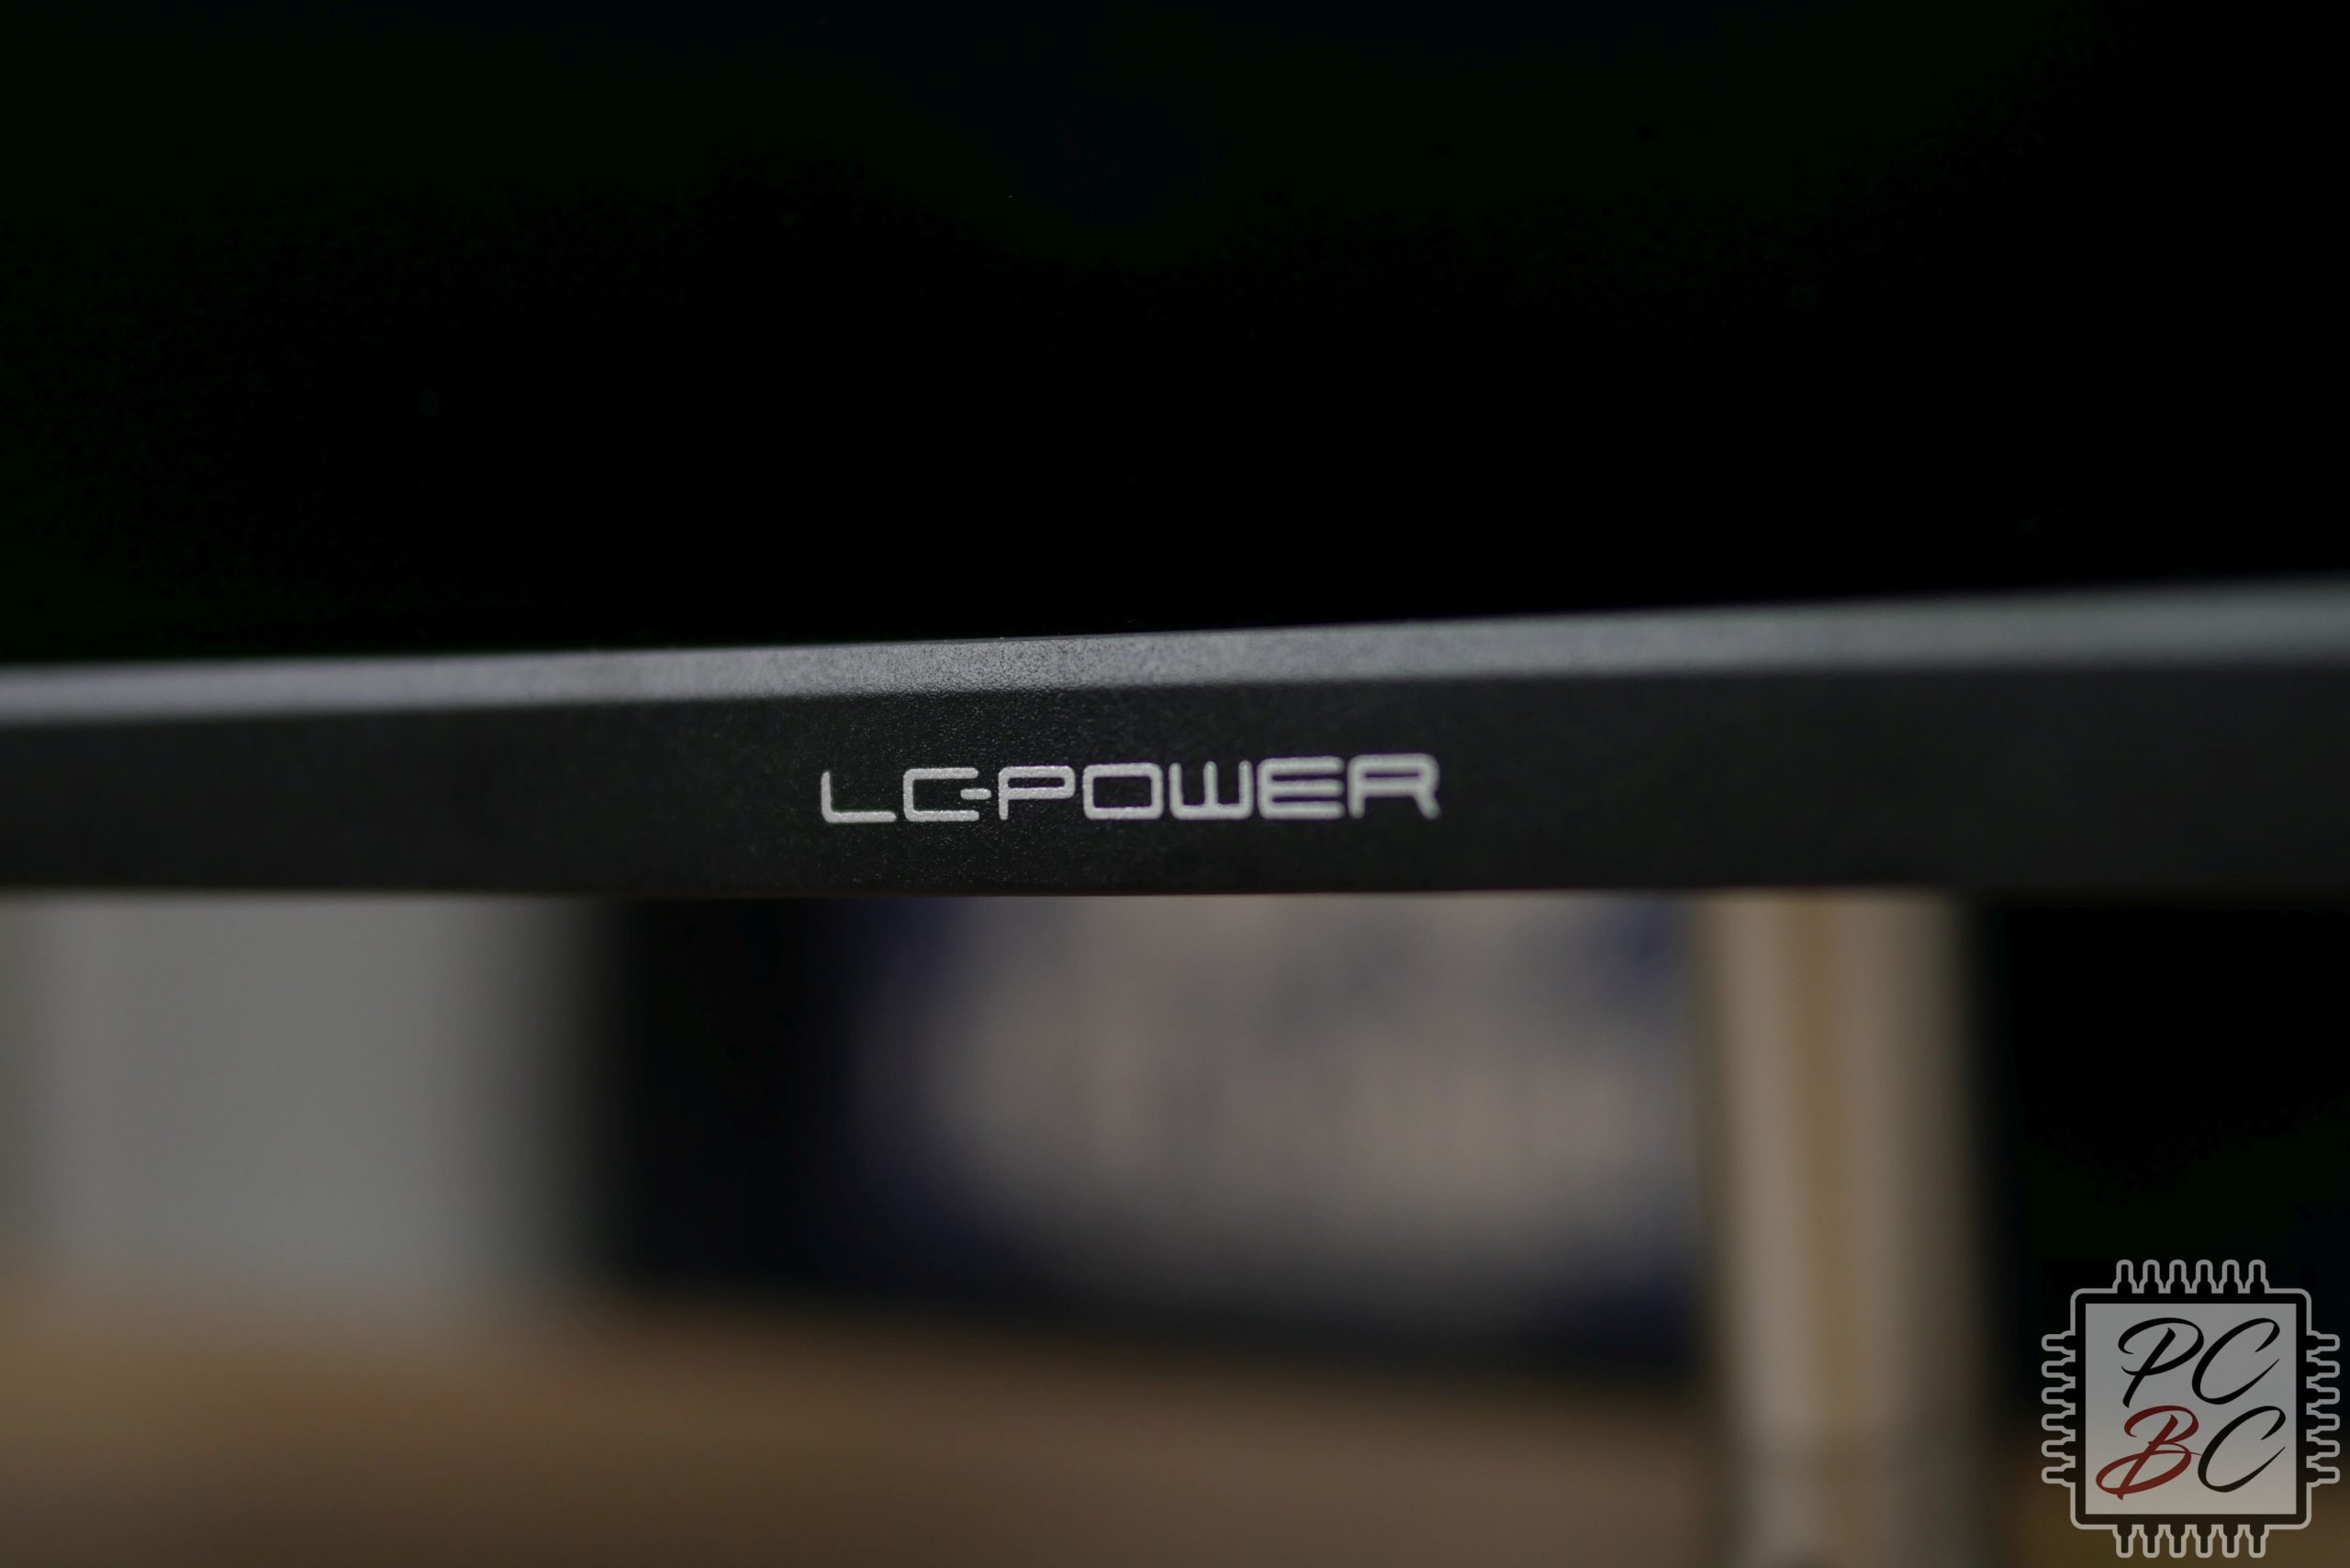 LC-Power LC-M34-UWQHD-100-C V2 Review Test Ultrawide Gaming